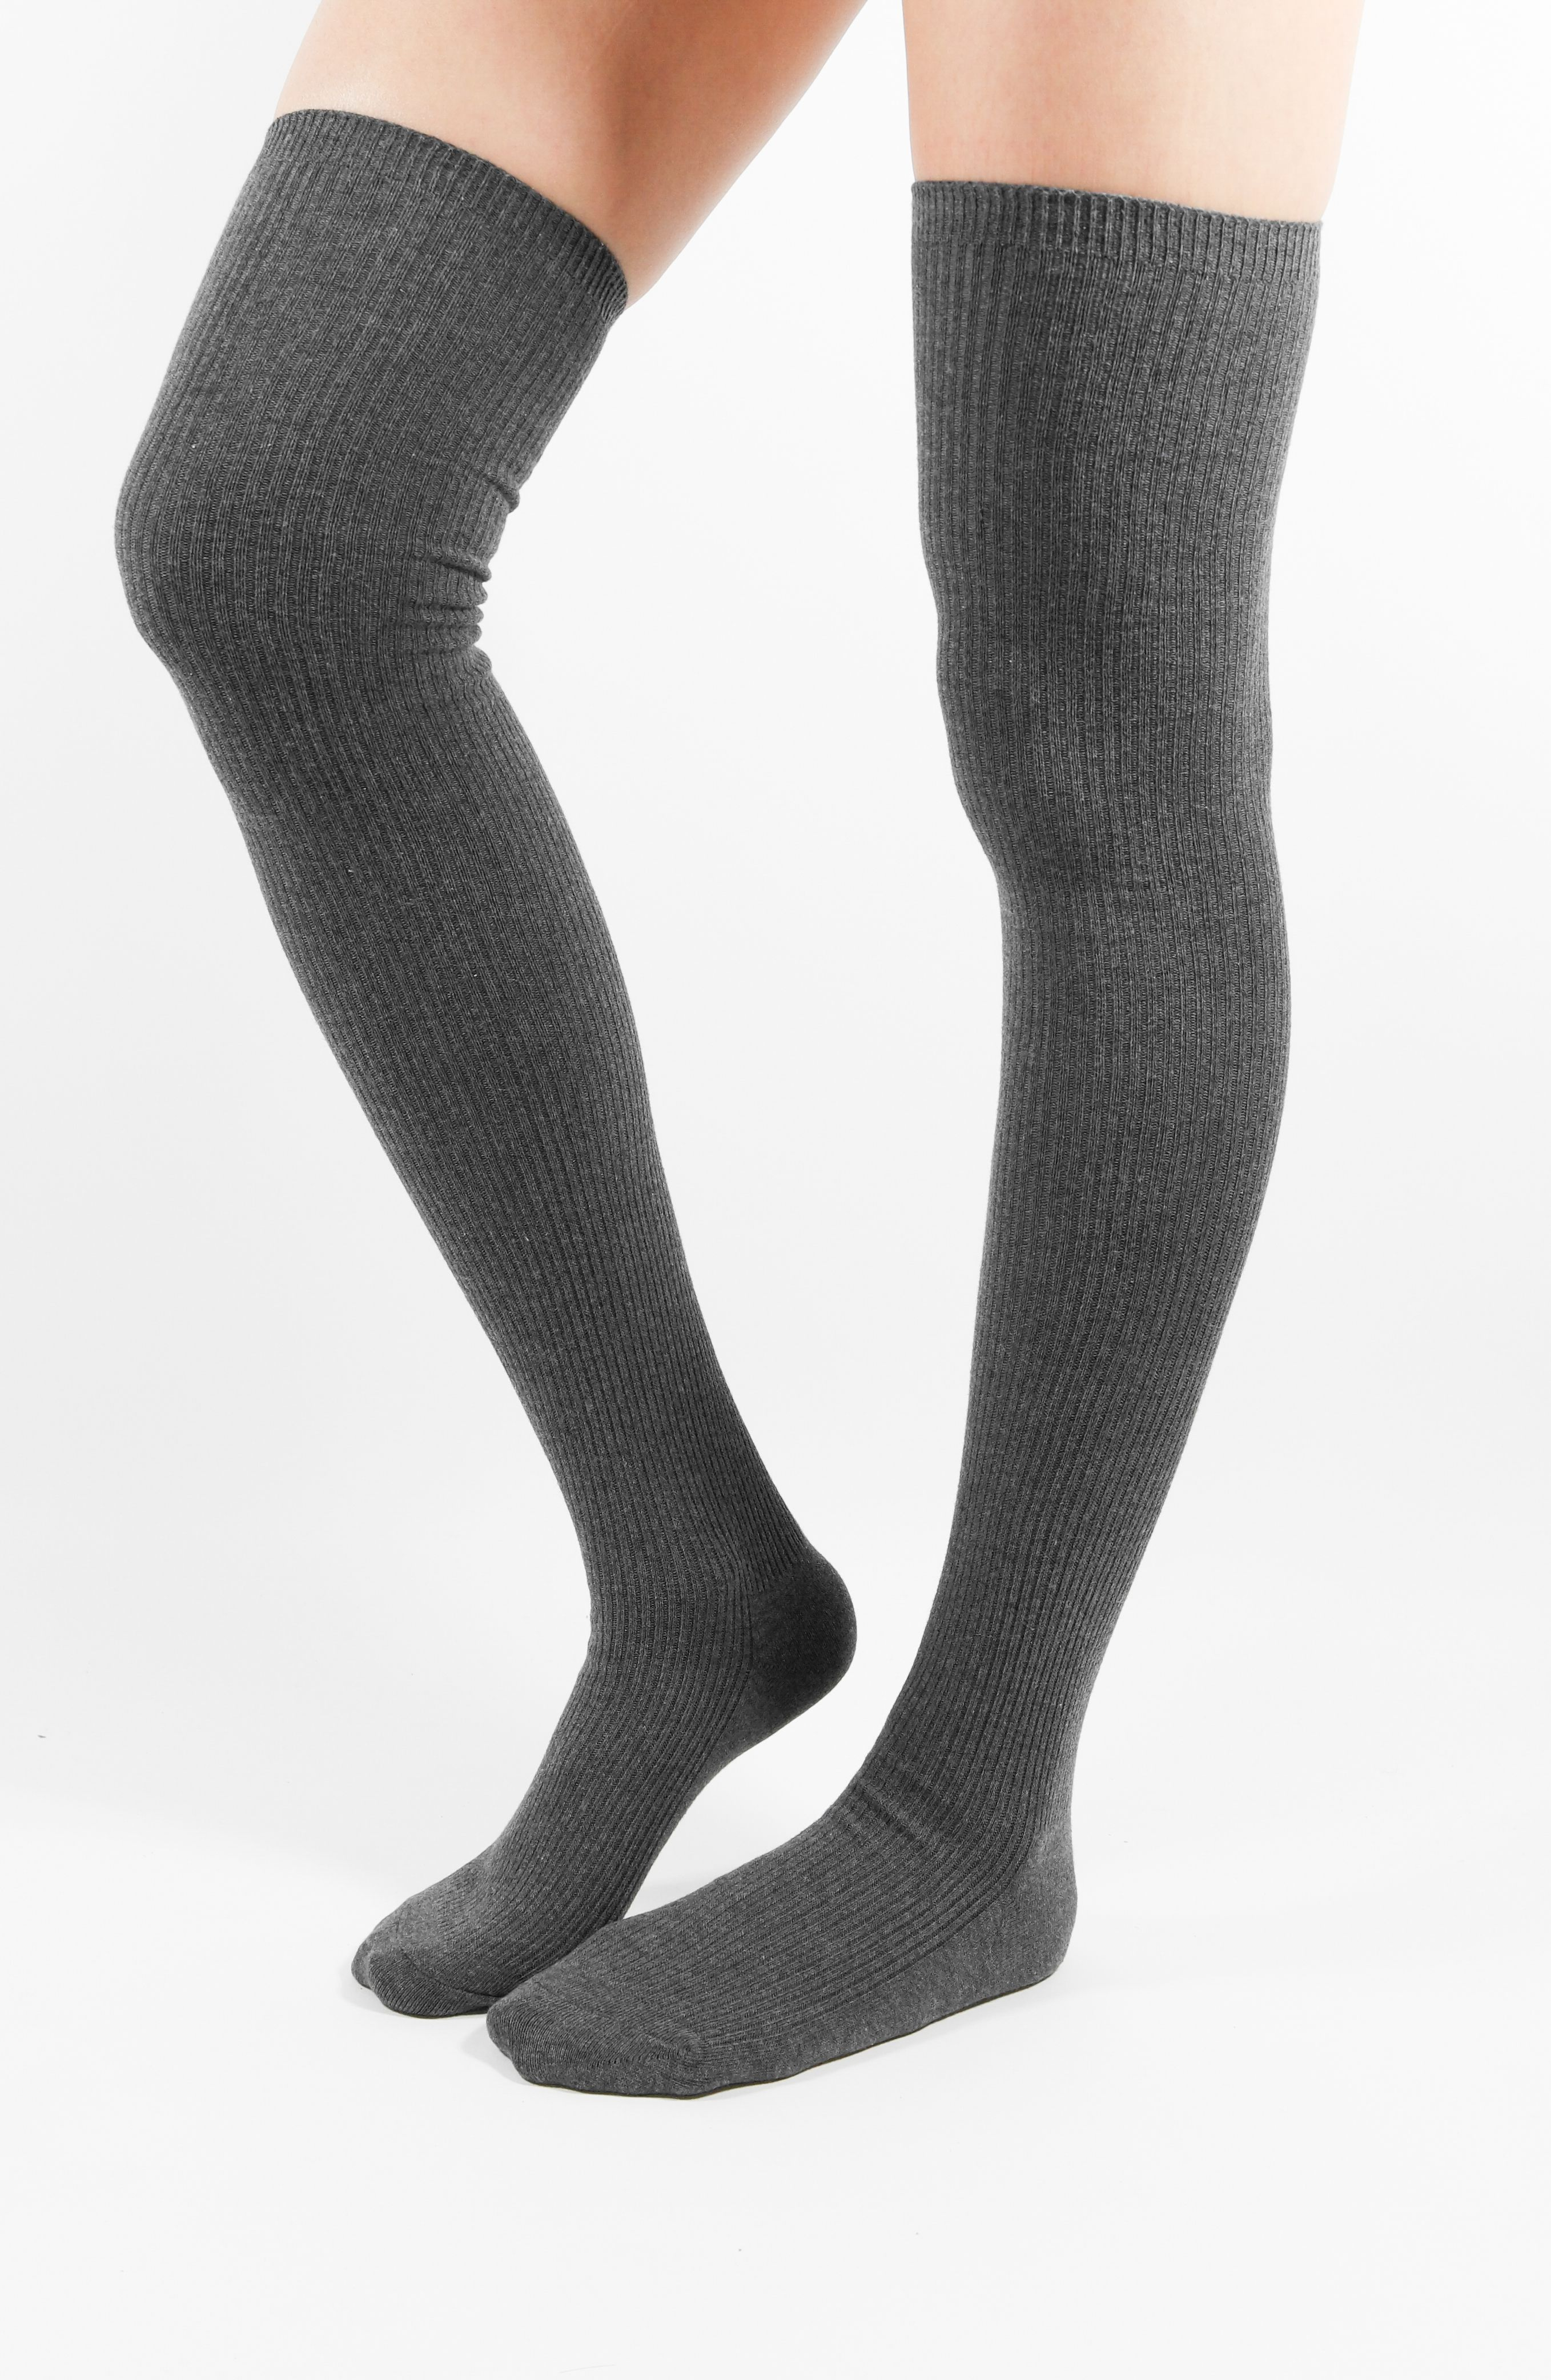 Women/'s Cotton Thigh High Winter Warm Booties Knitted Over Knee Socks Stockings